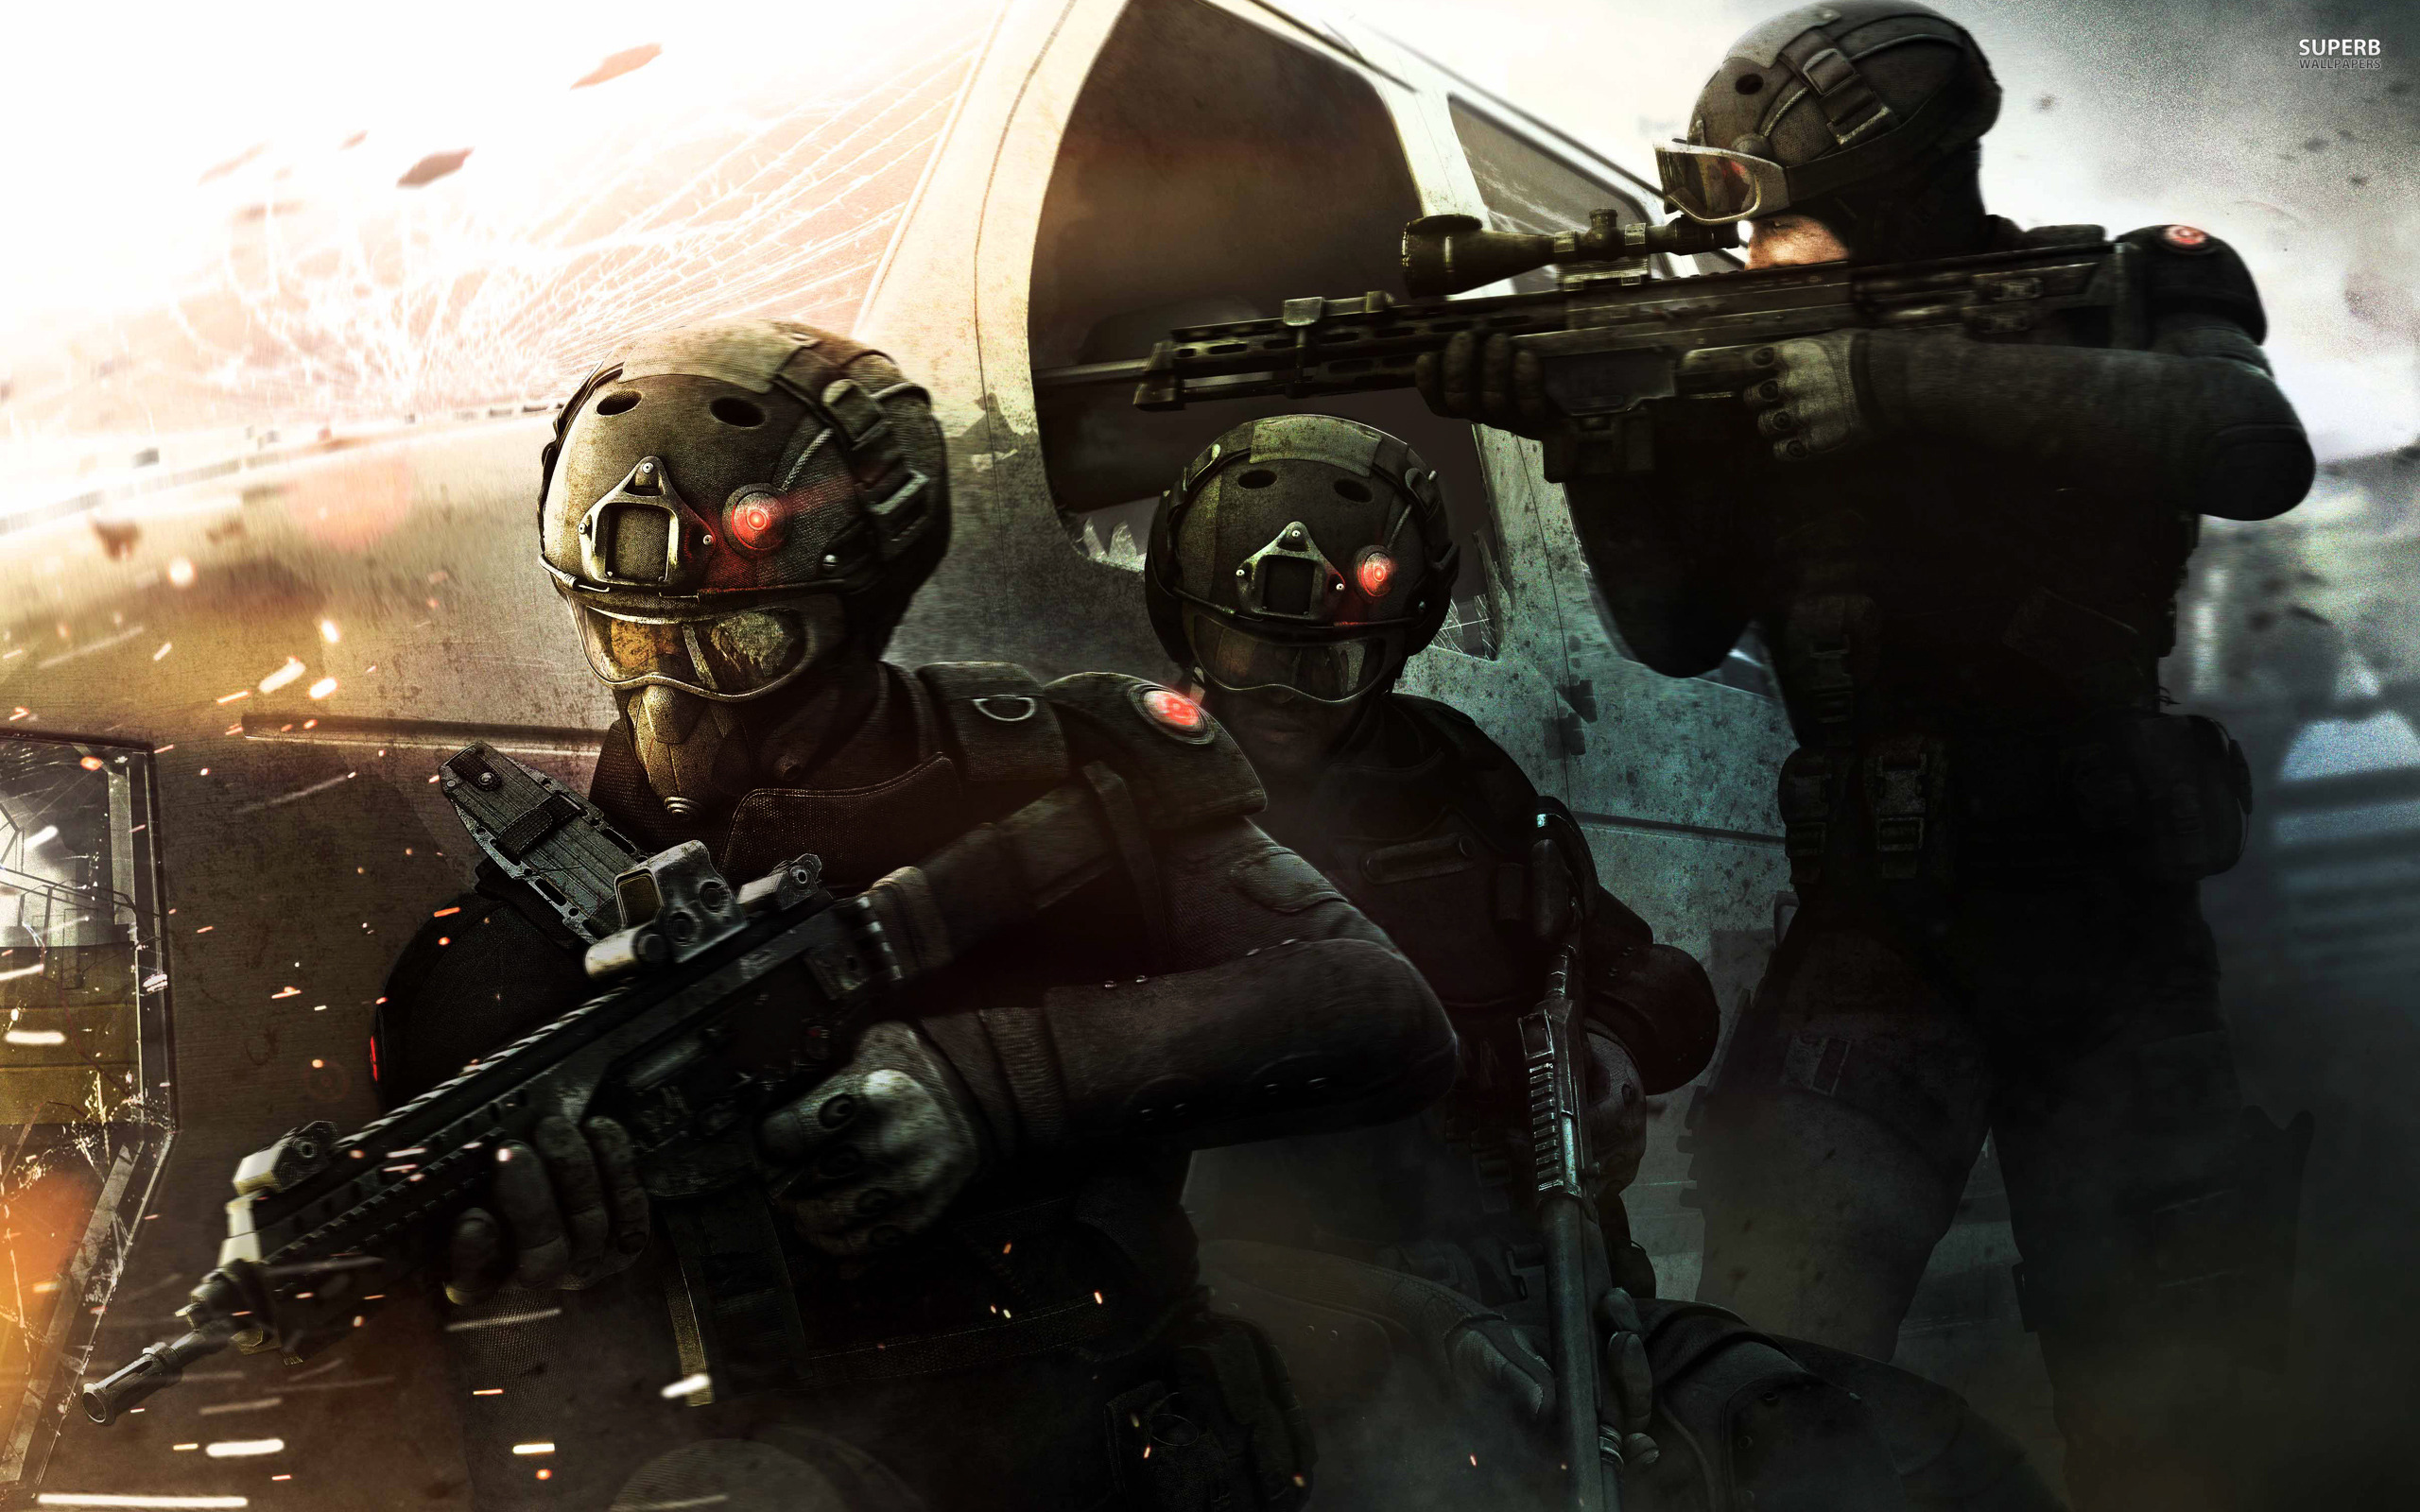 Tom Clancy's Rainbow 6: Patriots wallpaper 2560x1600 jpg